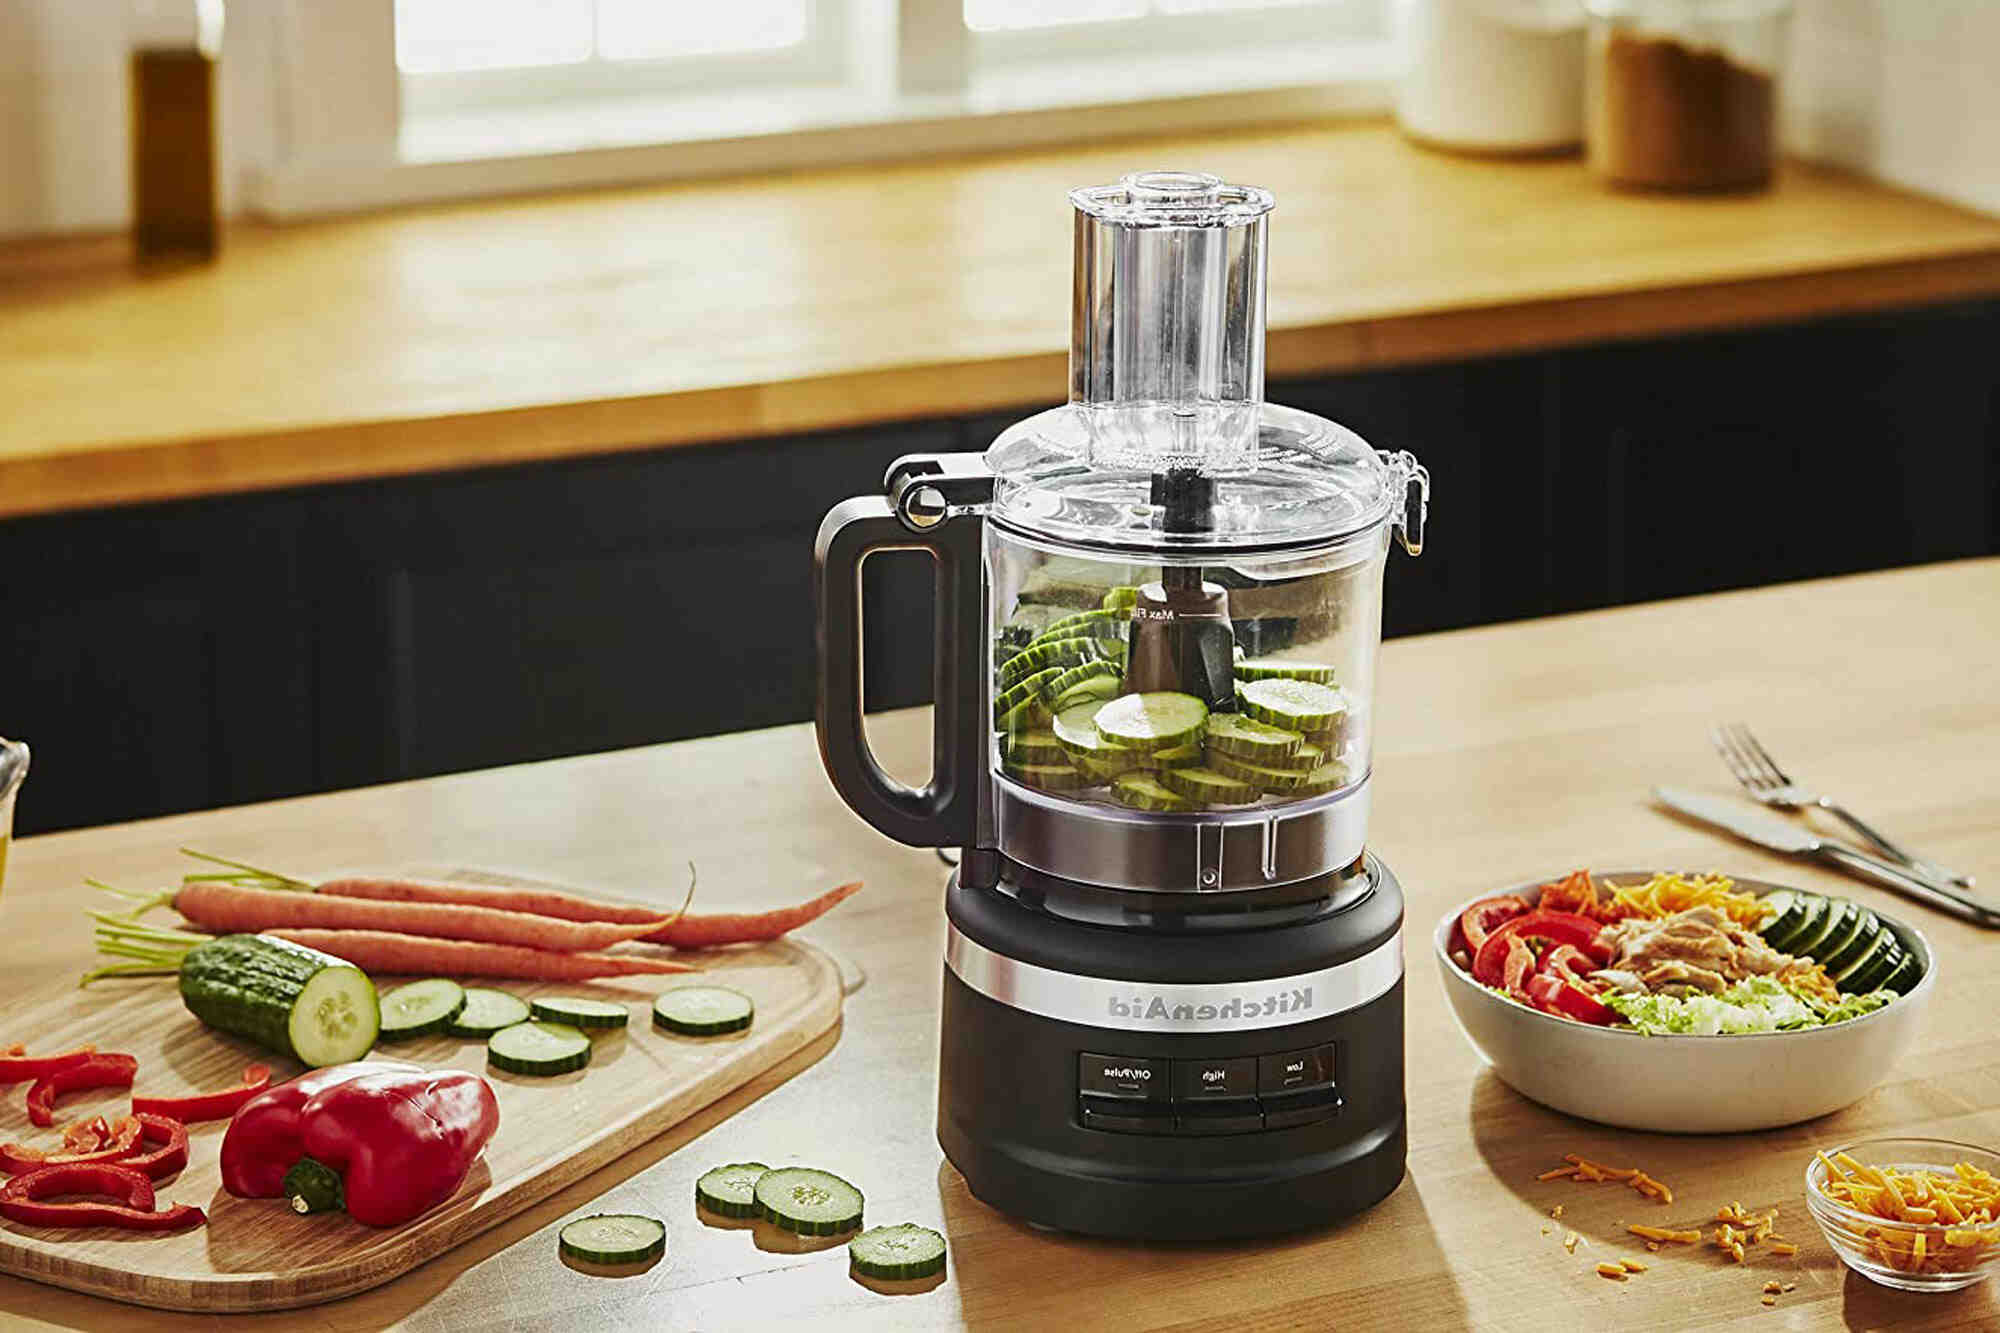 Can you make dough in a food processor?